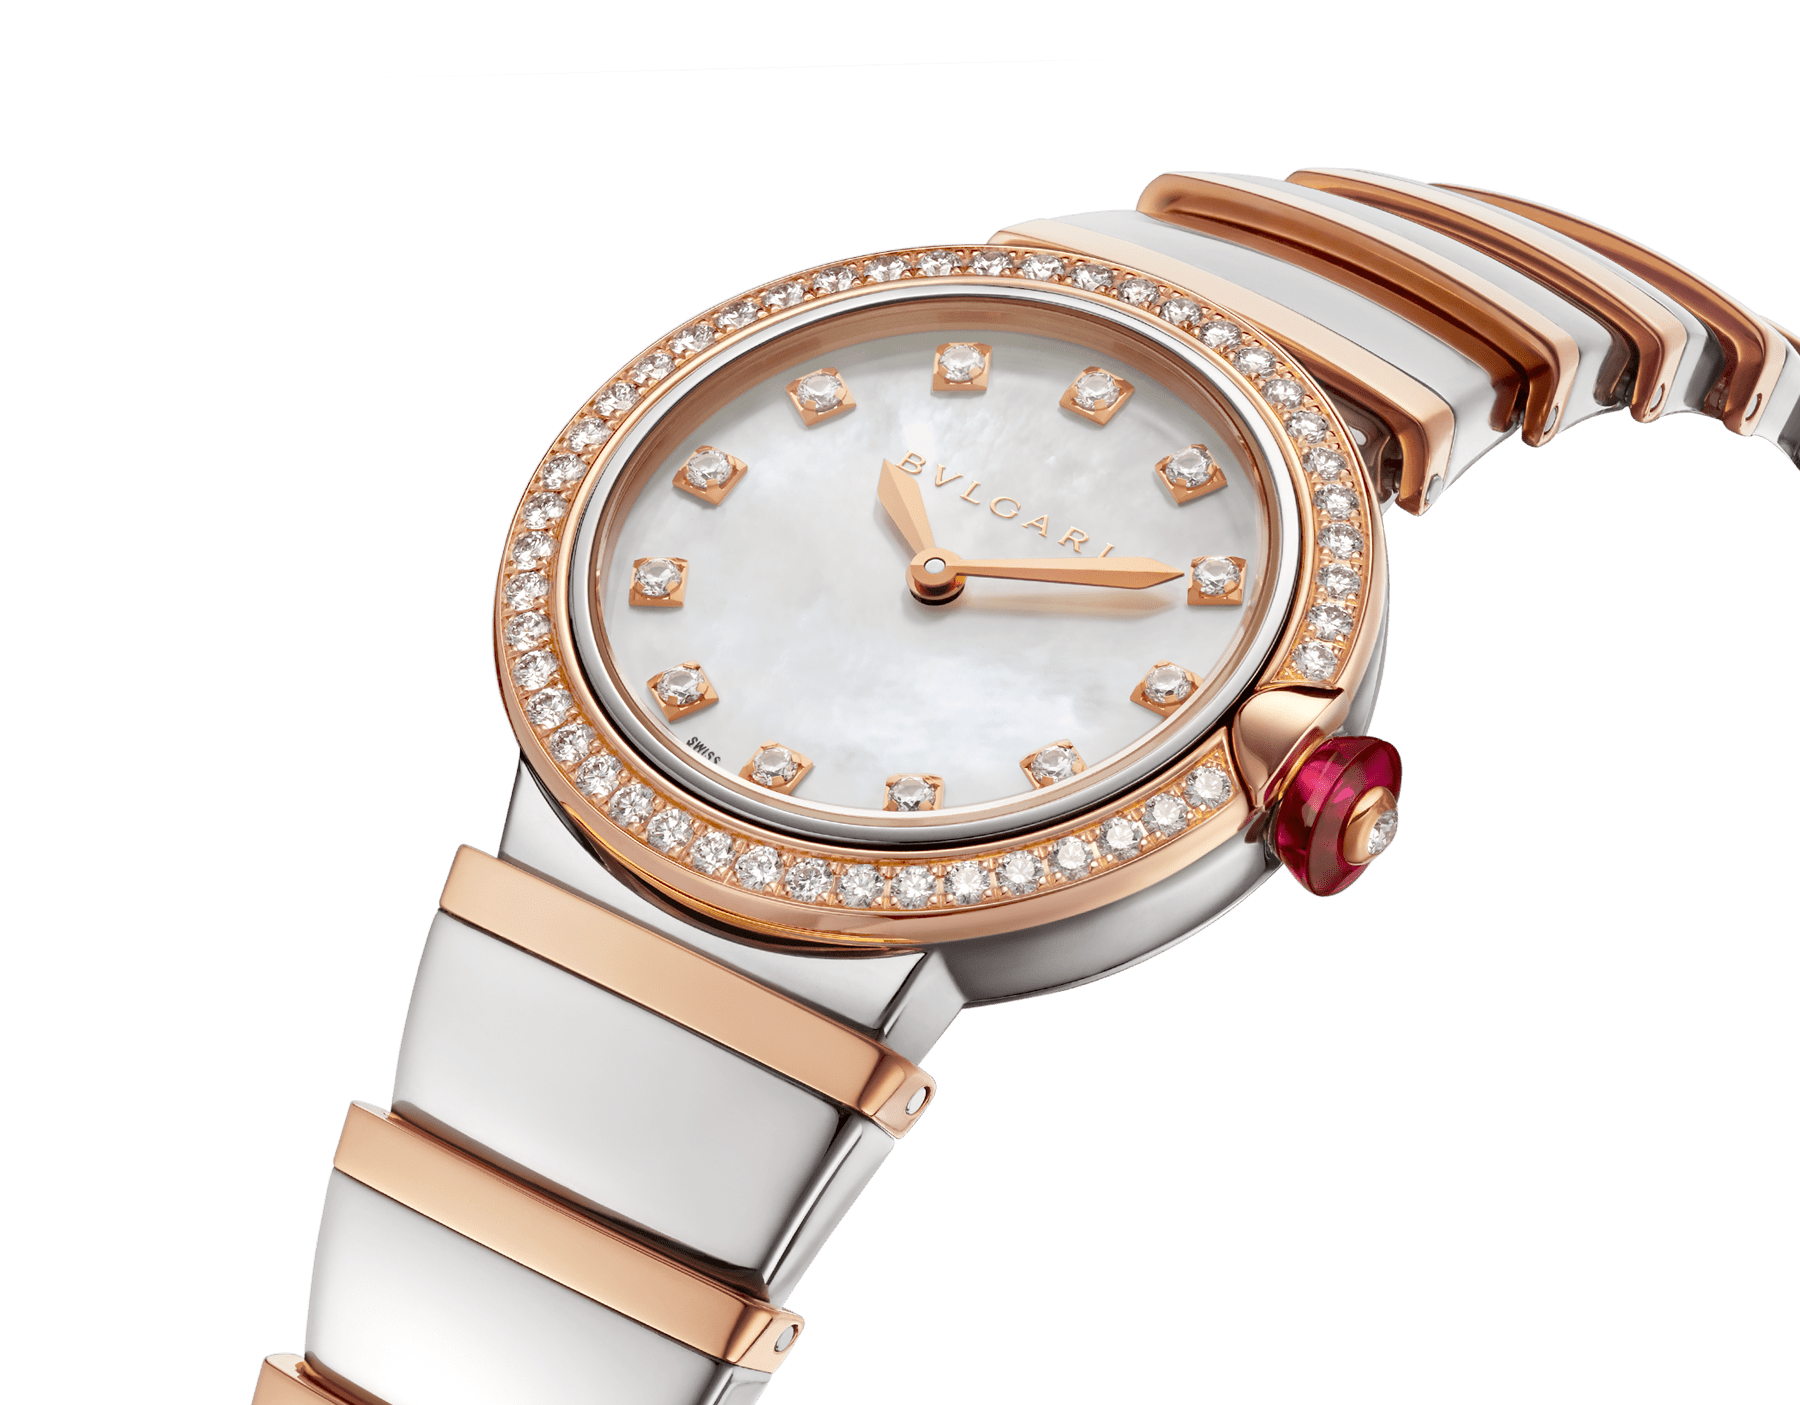 LVCEA watch with stainless steel case, 18 kt rose gold bezel set with brilliant-cut diamonds, white mother-of-pearl dial, diamond indexes and bracelet in stainless teel and 18 kt rose gold 102475 image 2